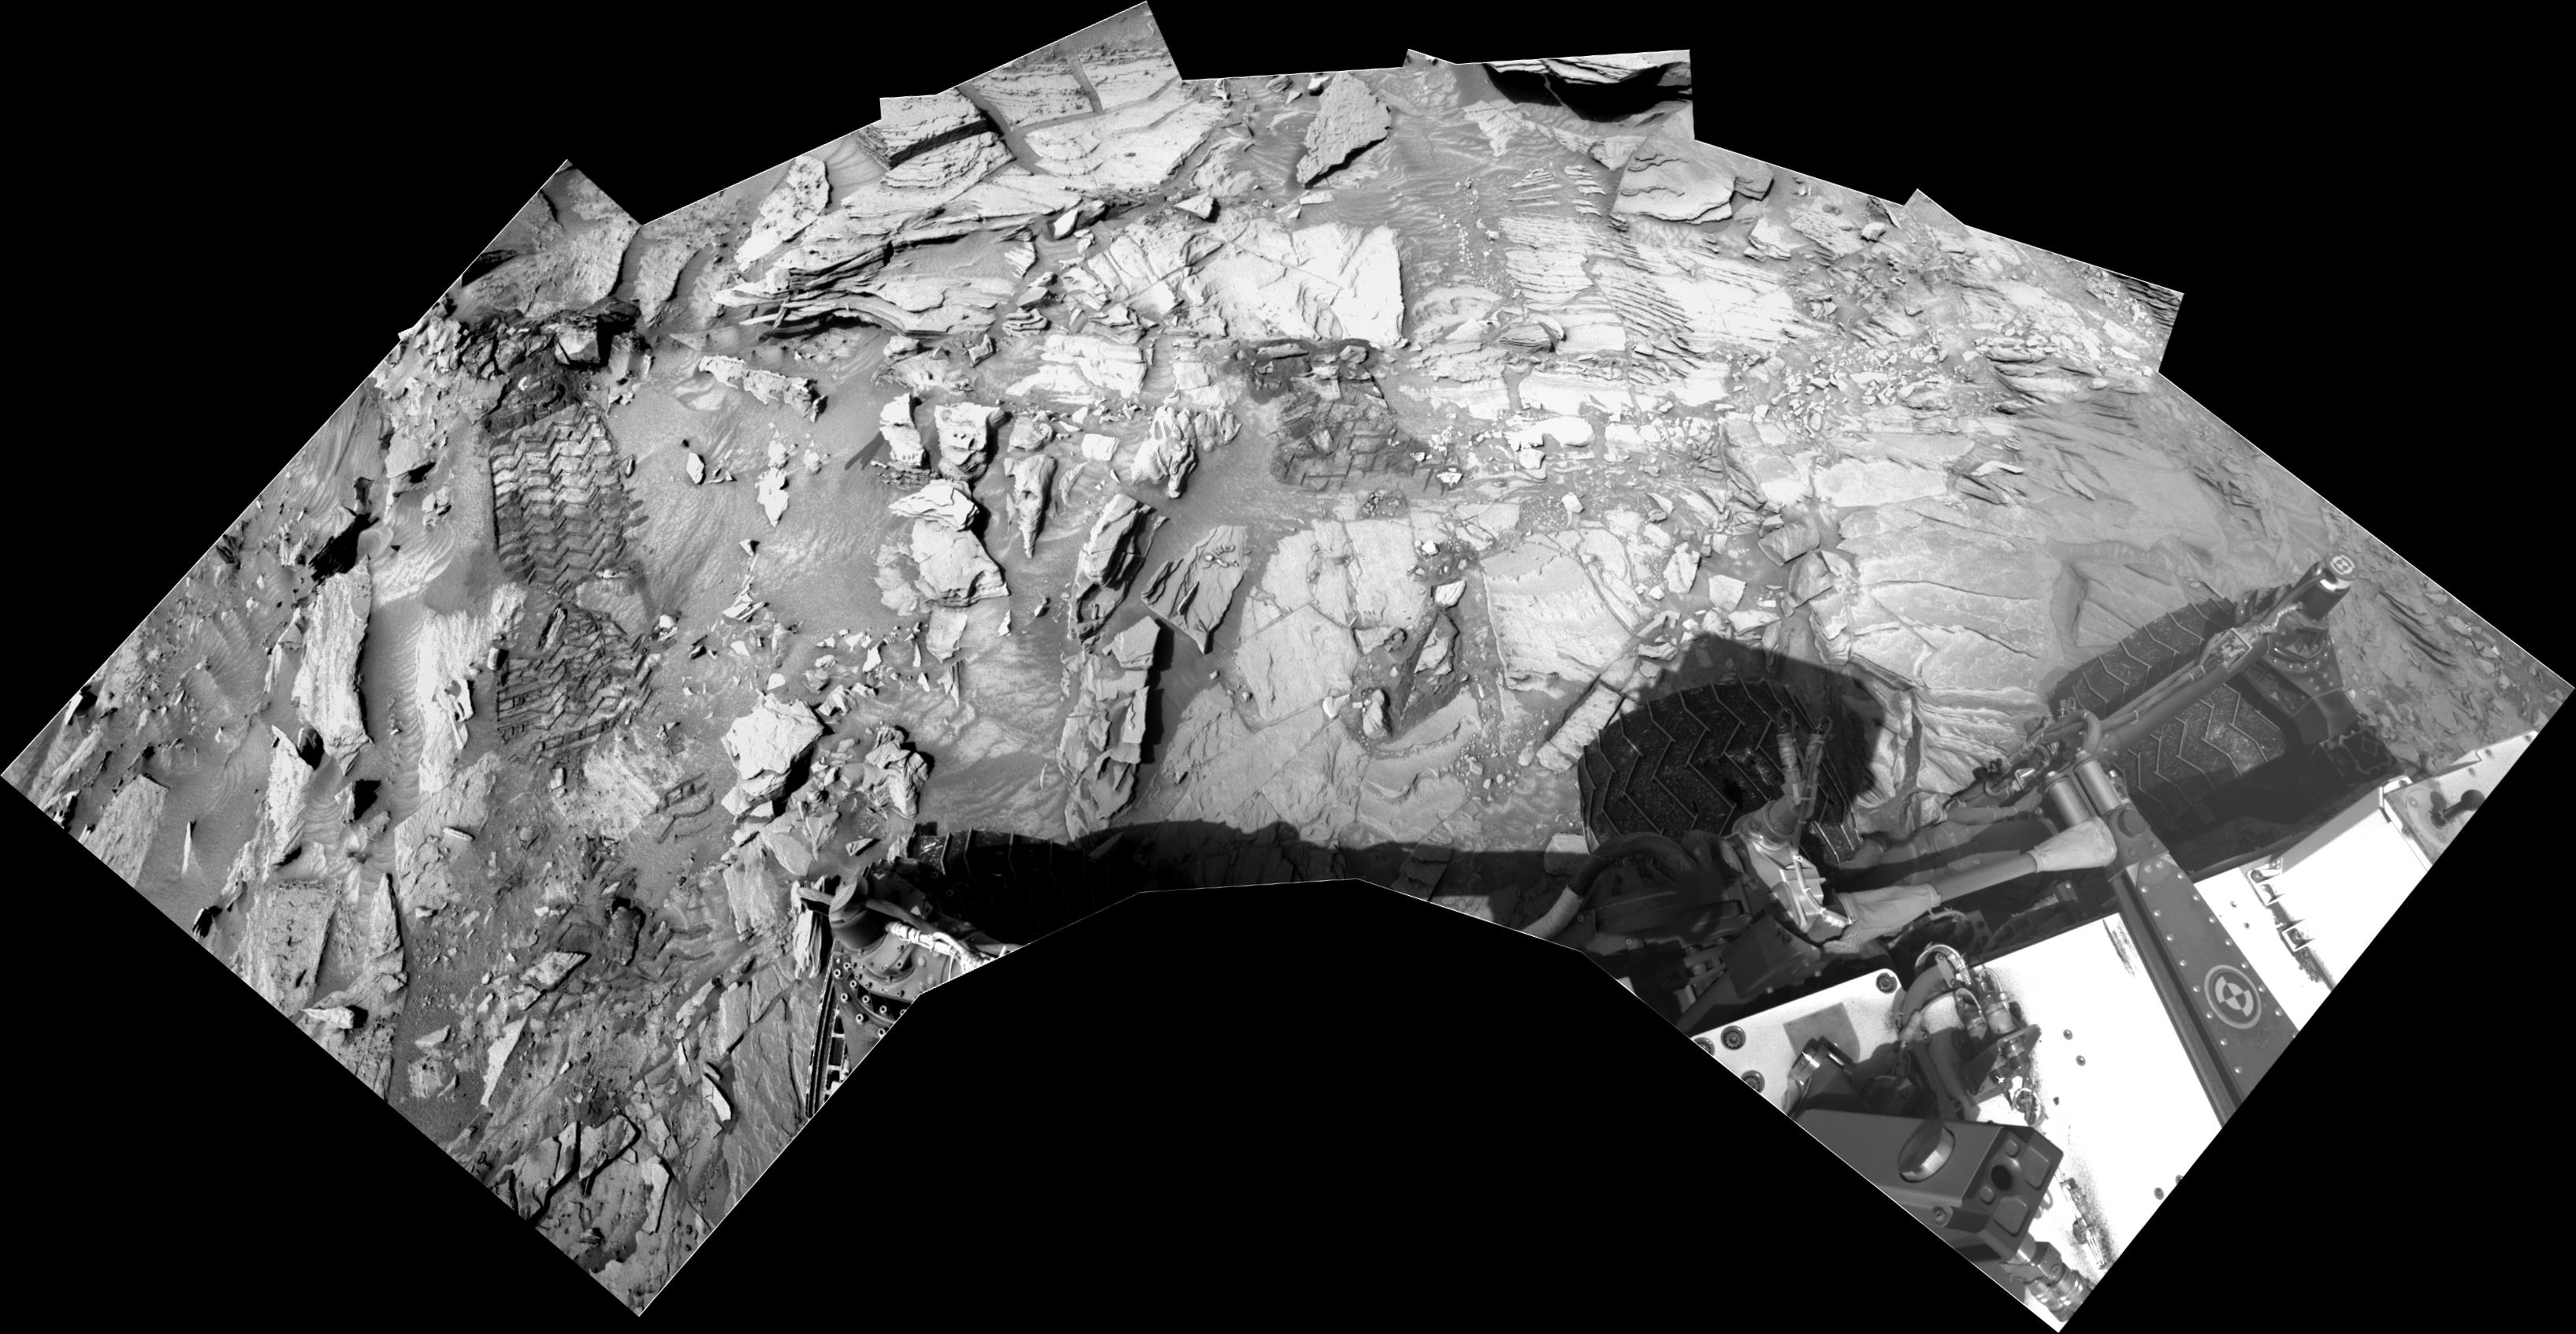 panoramic curiosity rover view b&w 1 - sol 1344 - was life on mars